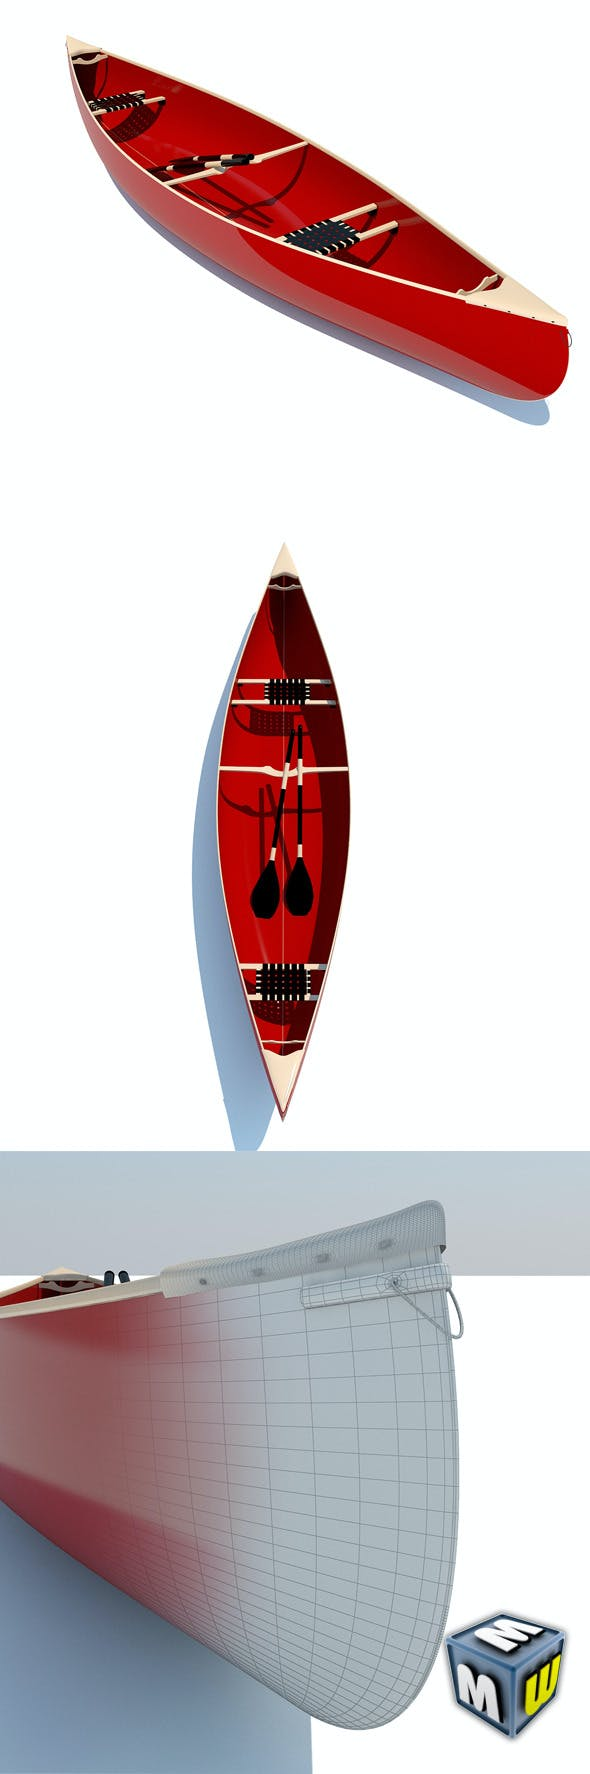 Canoe MAX 2011 - 3DOcean Item for Sale